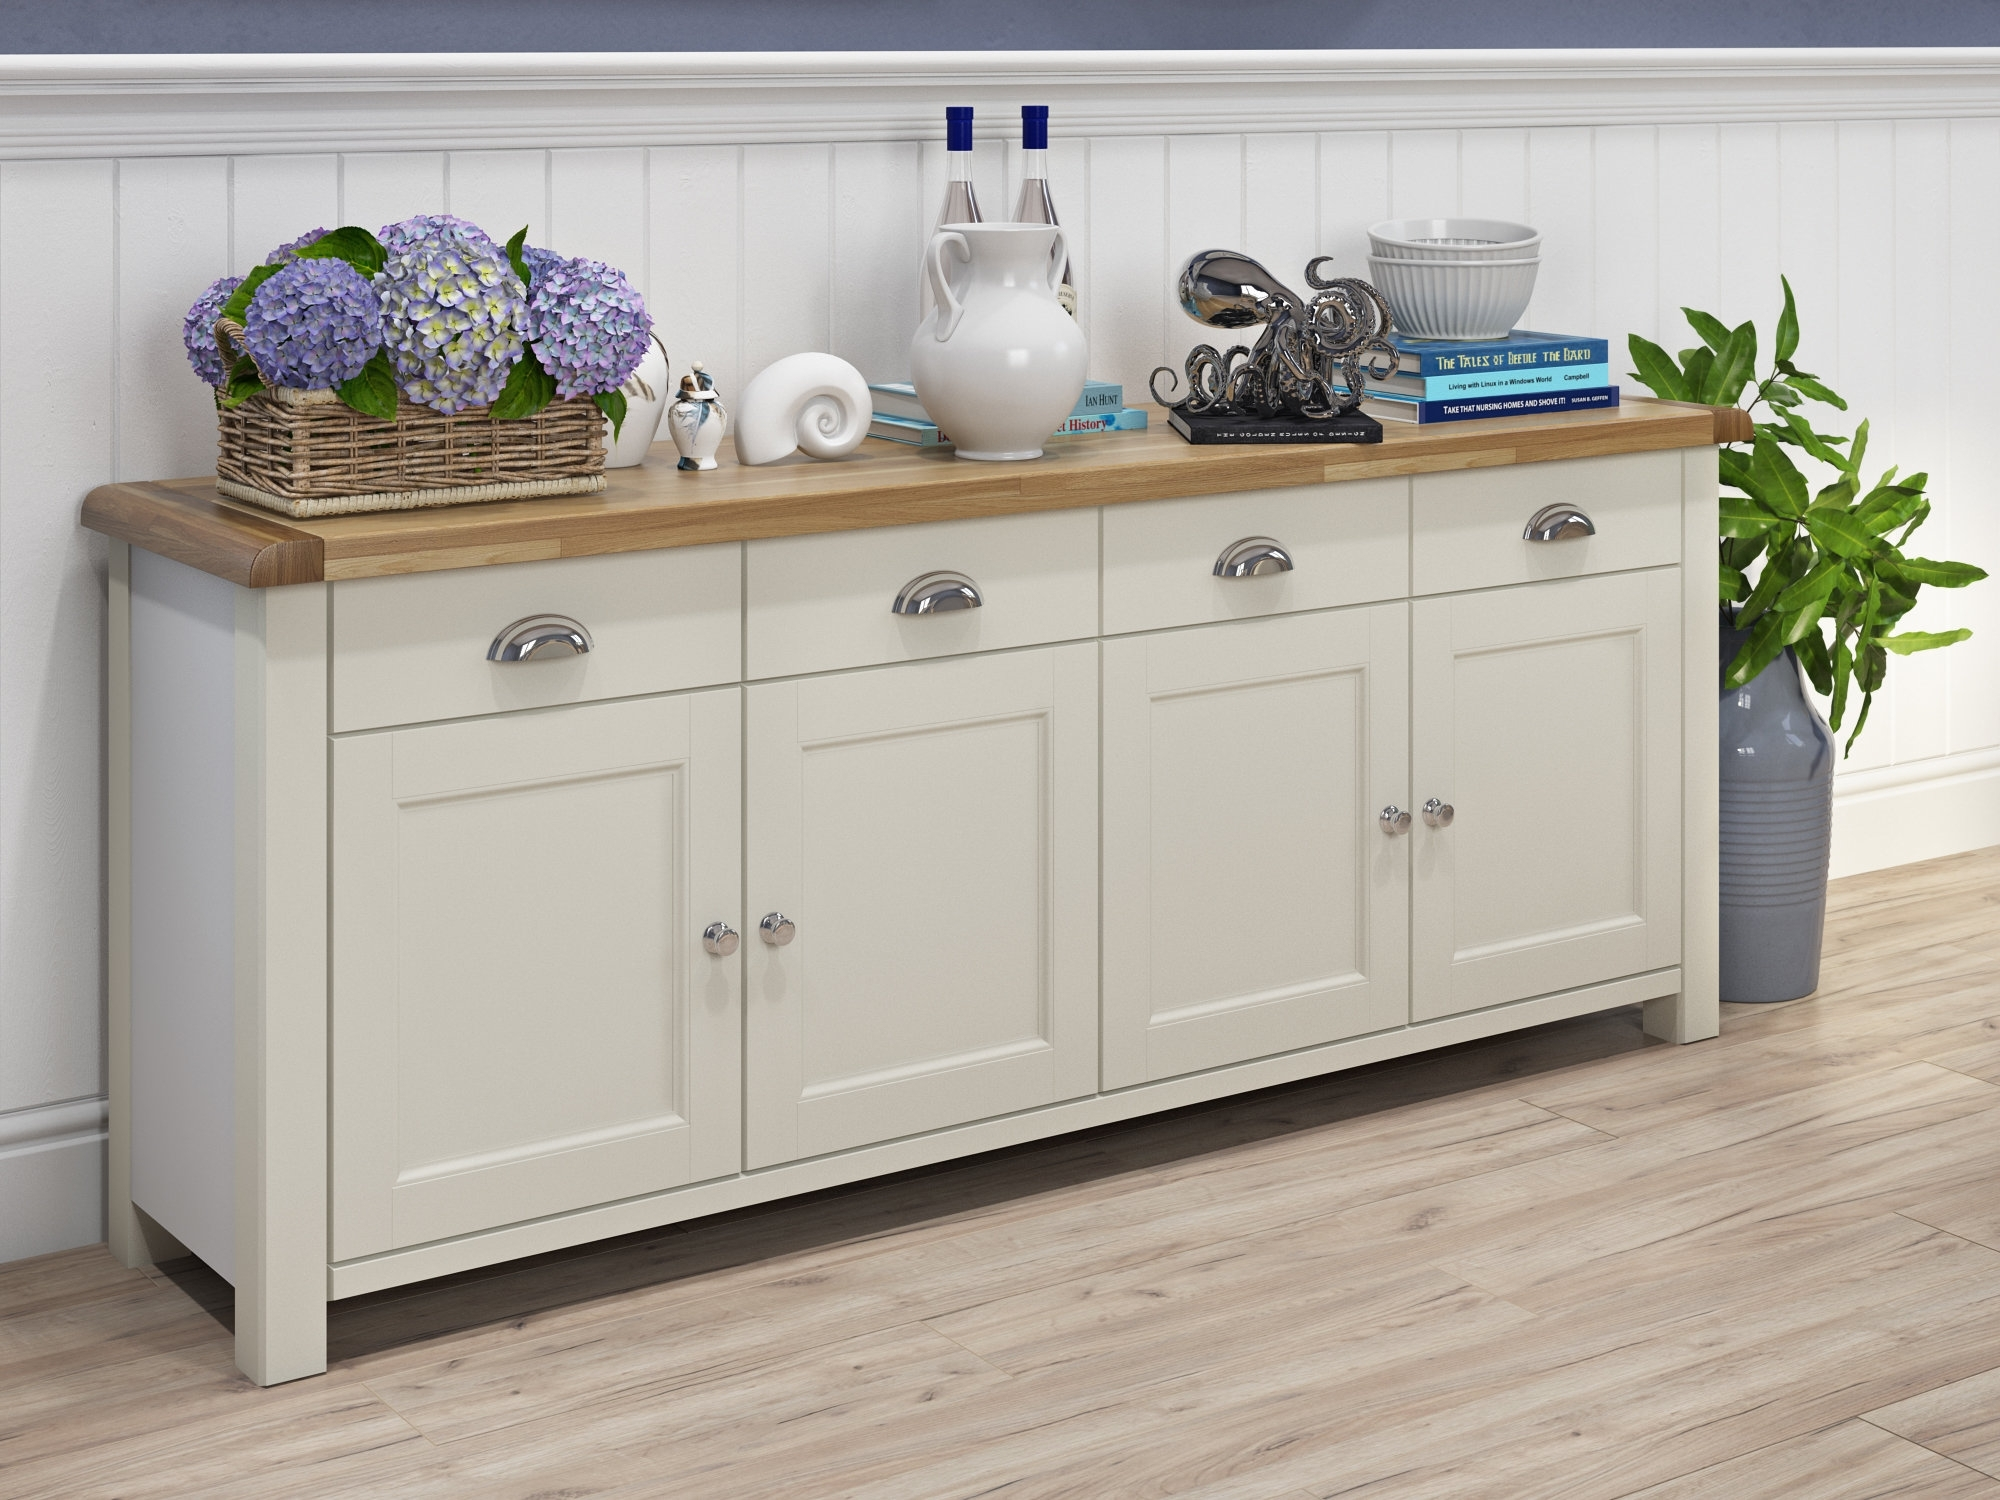 Beachcrest Home Sanford Sideboard & Reviews | Wayfair.co (#2 of 20)